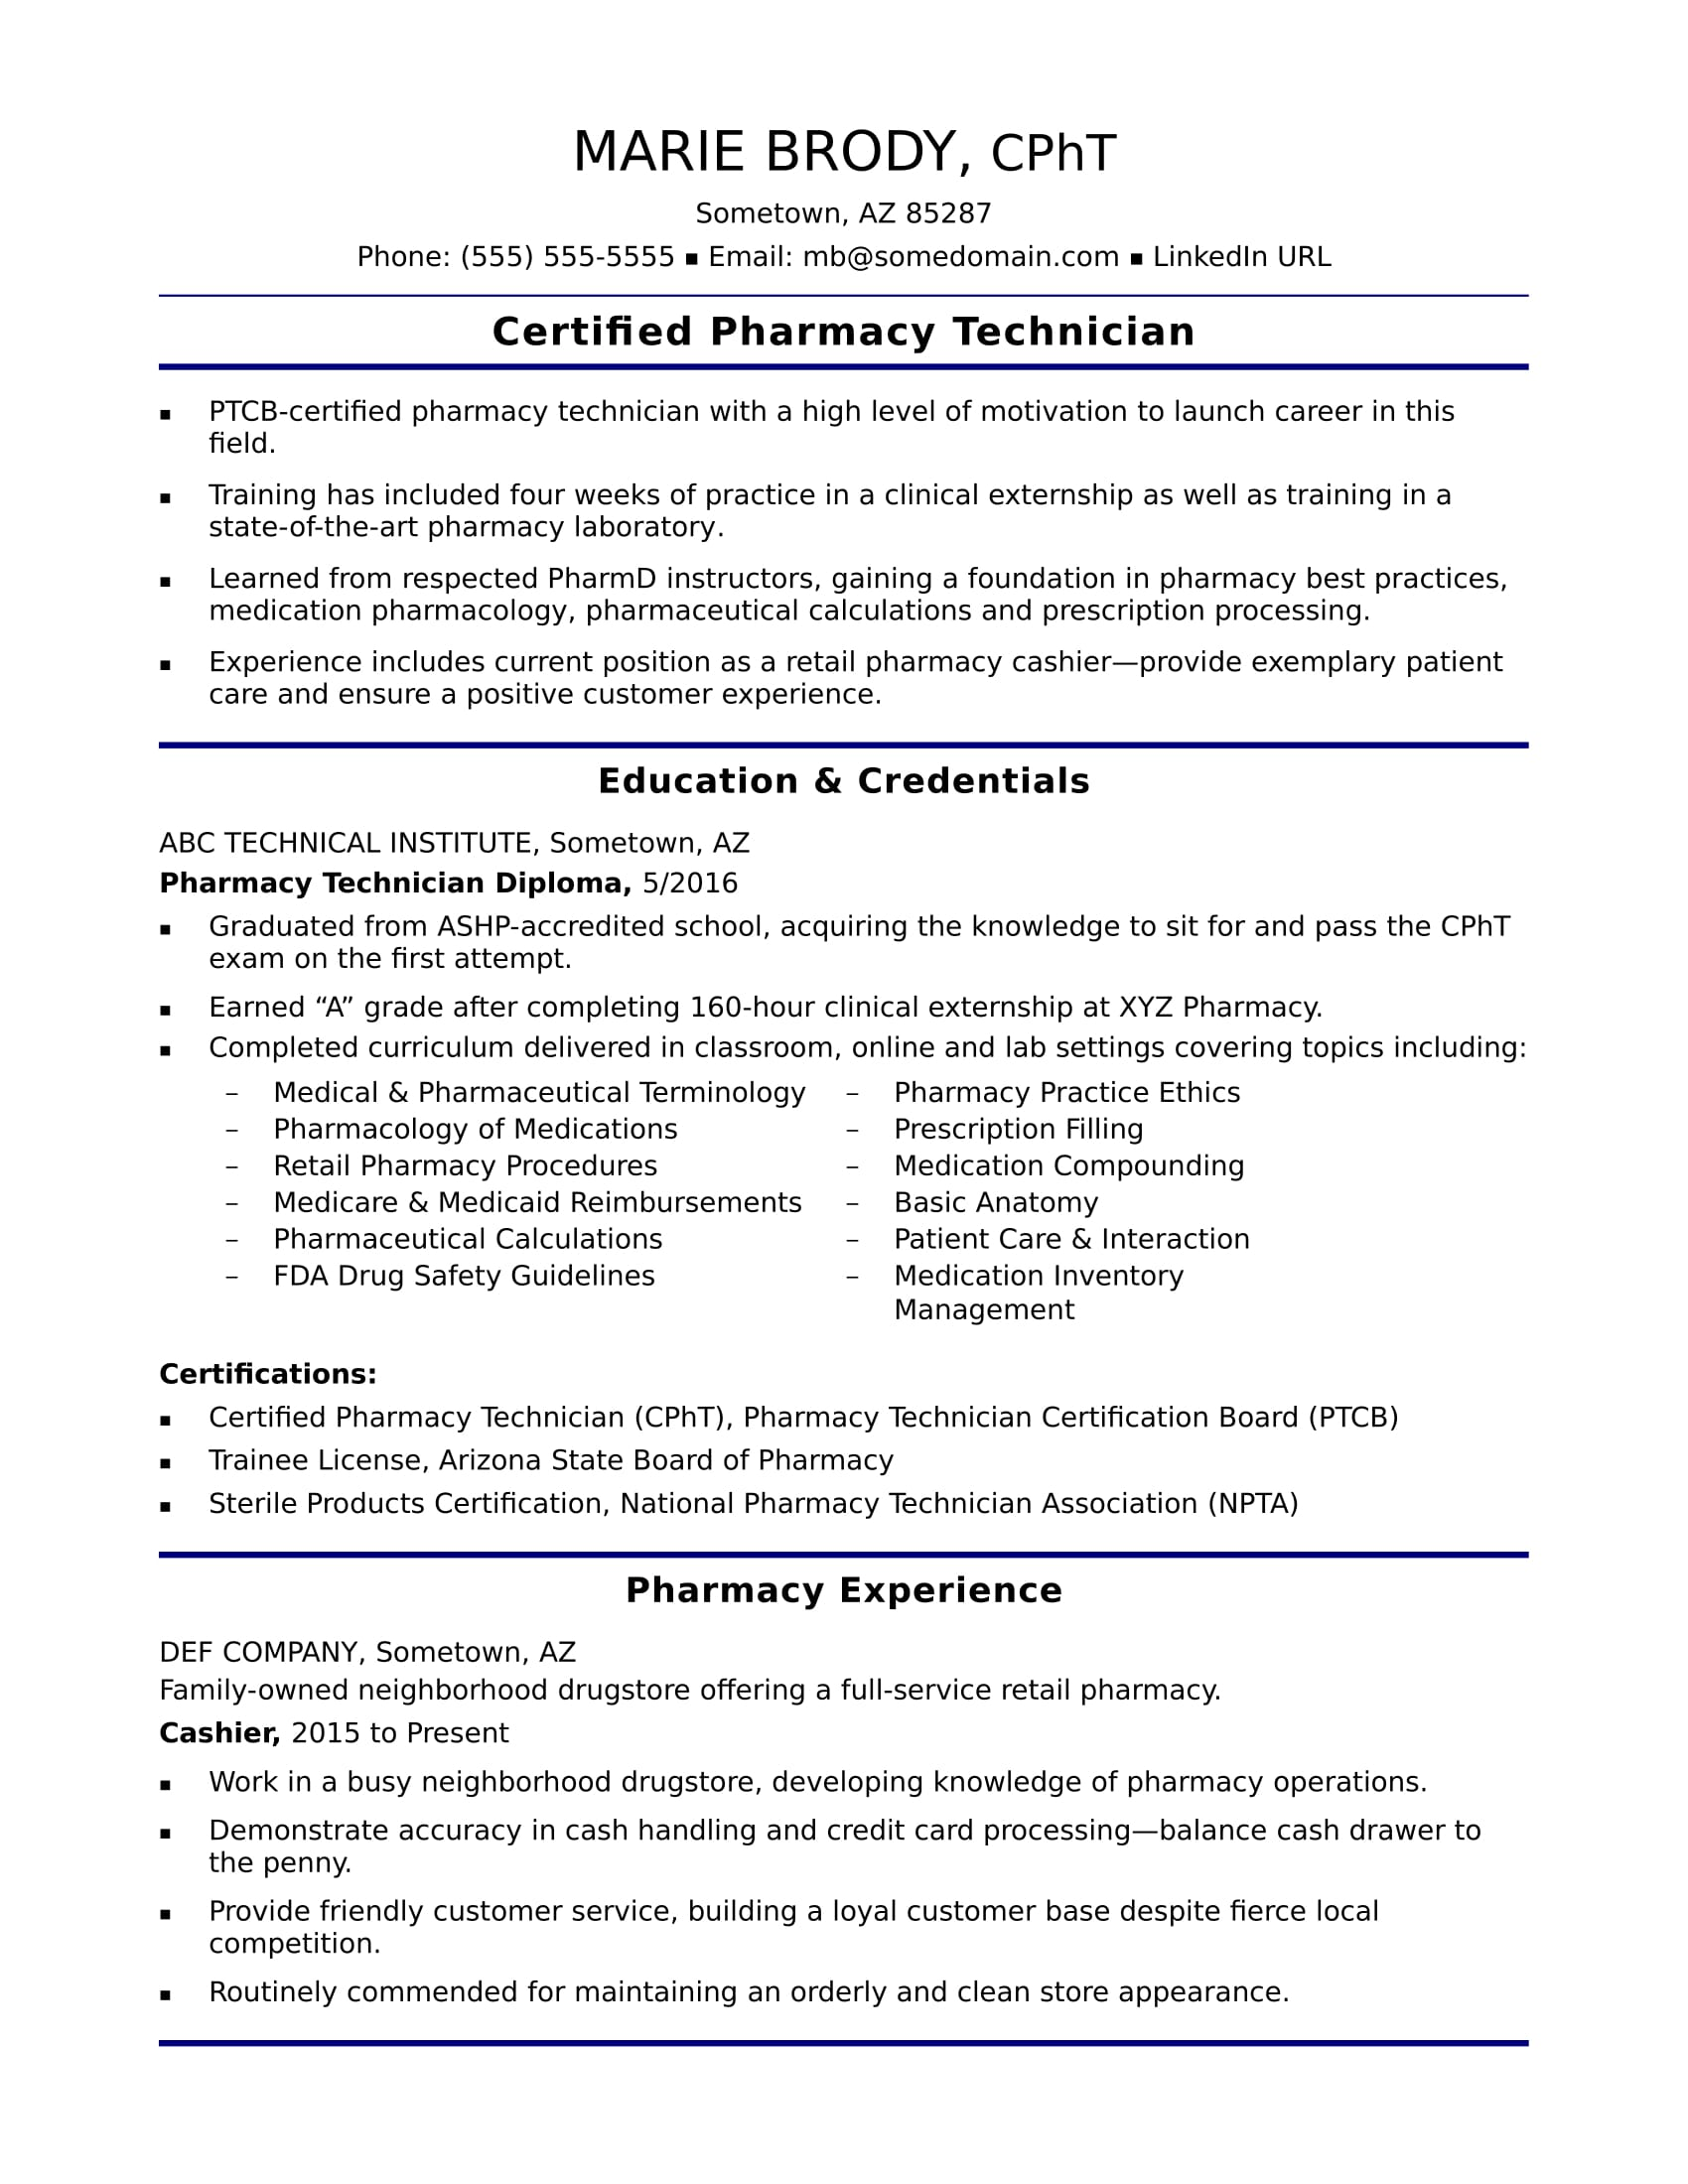 Amazing Sample Resume For An Entry Level Pharmacy Technician